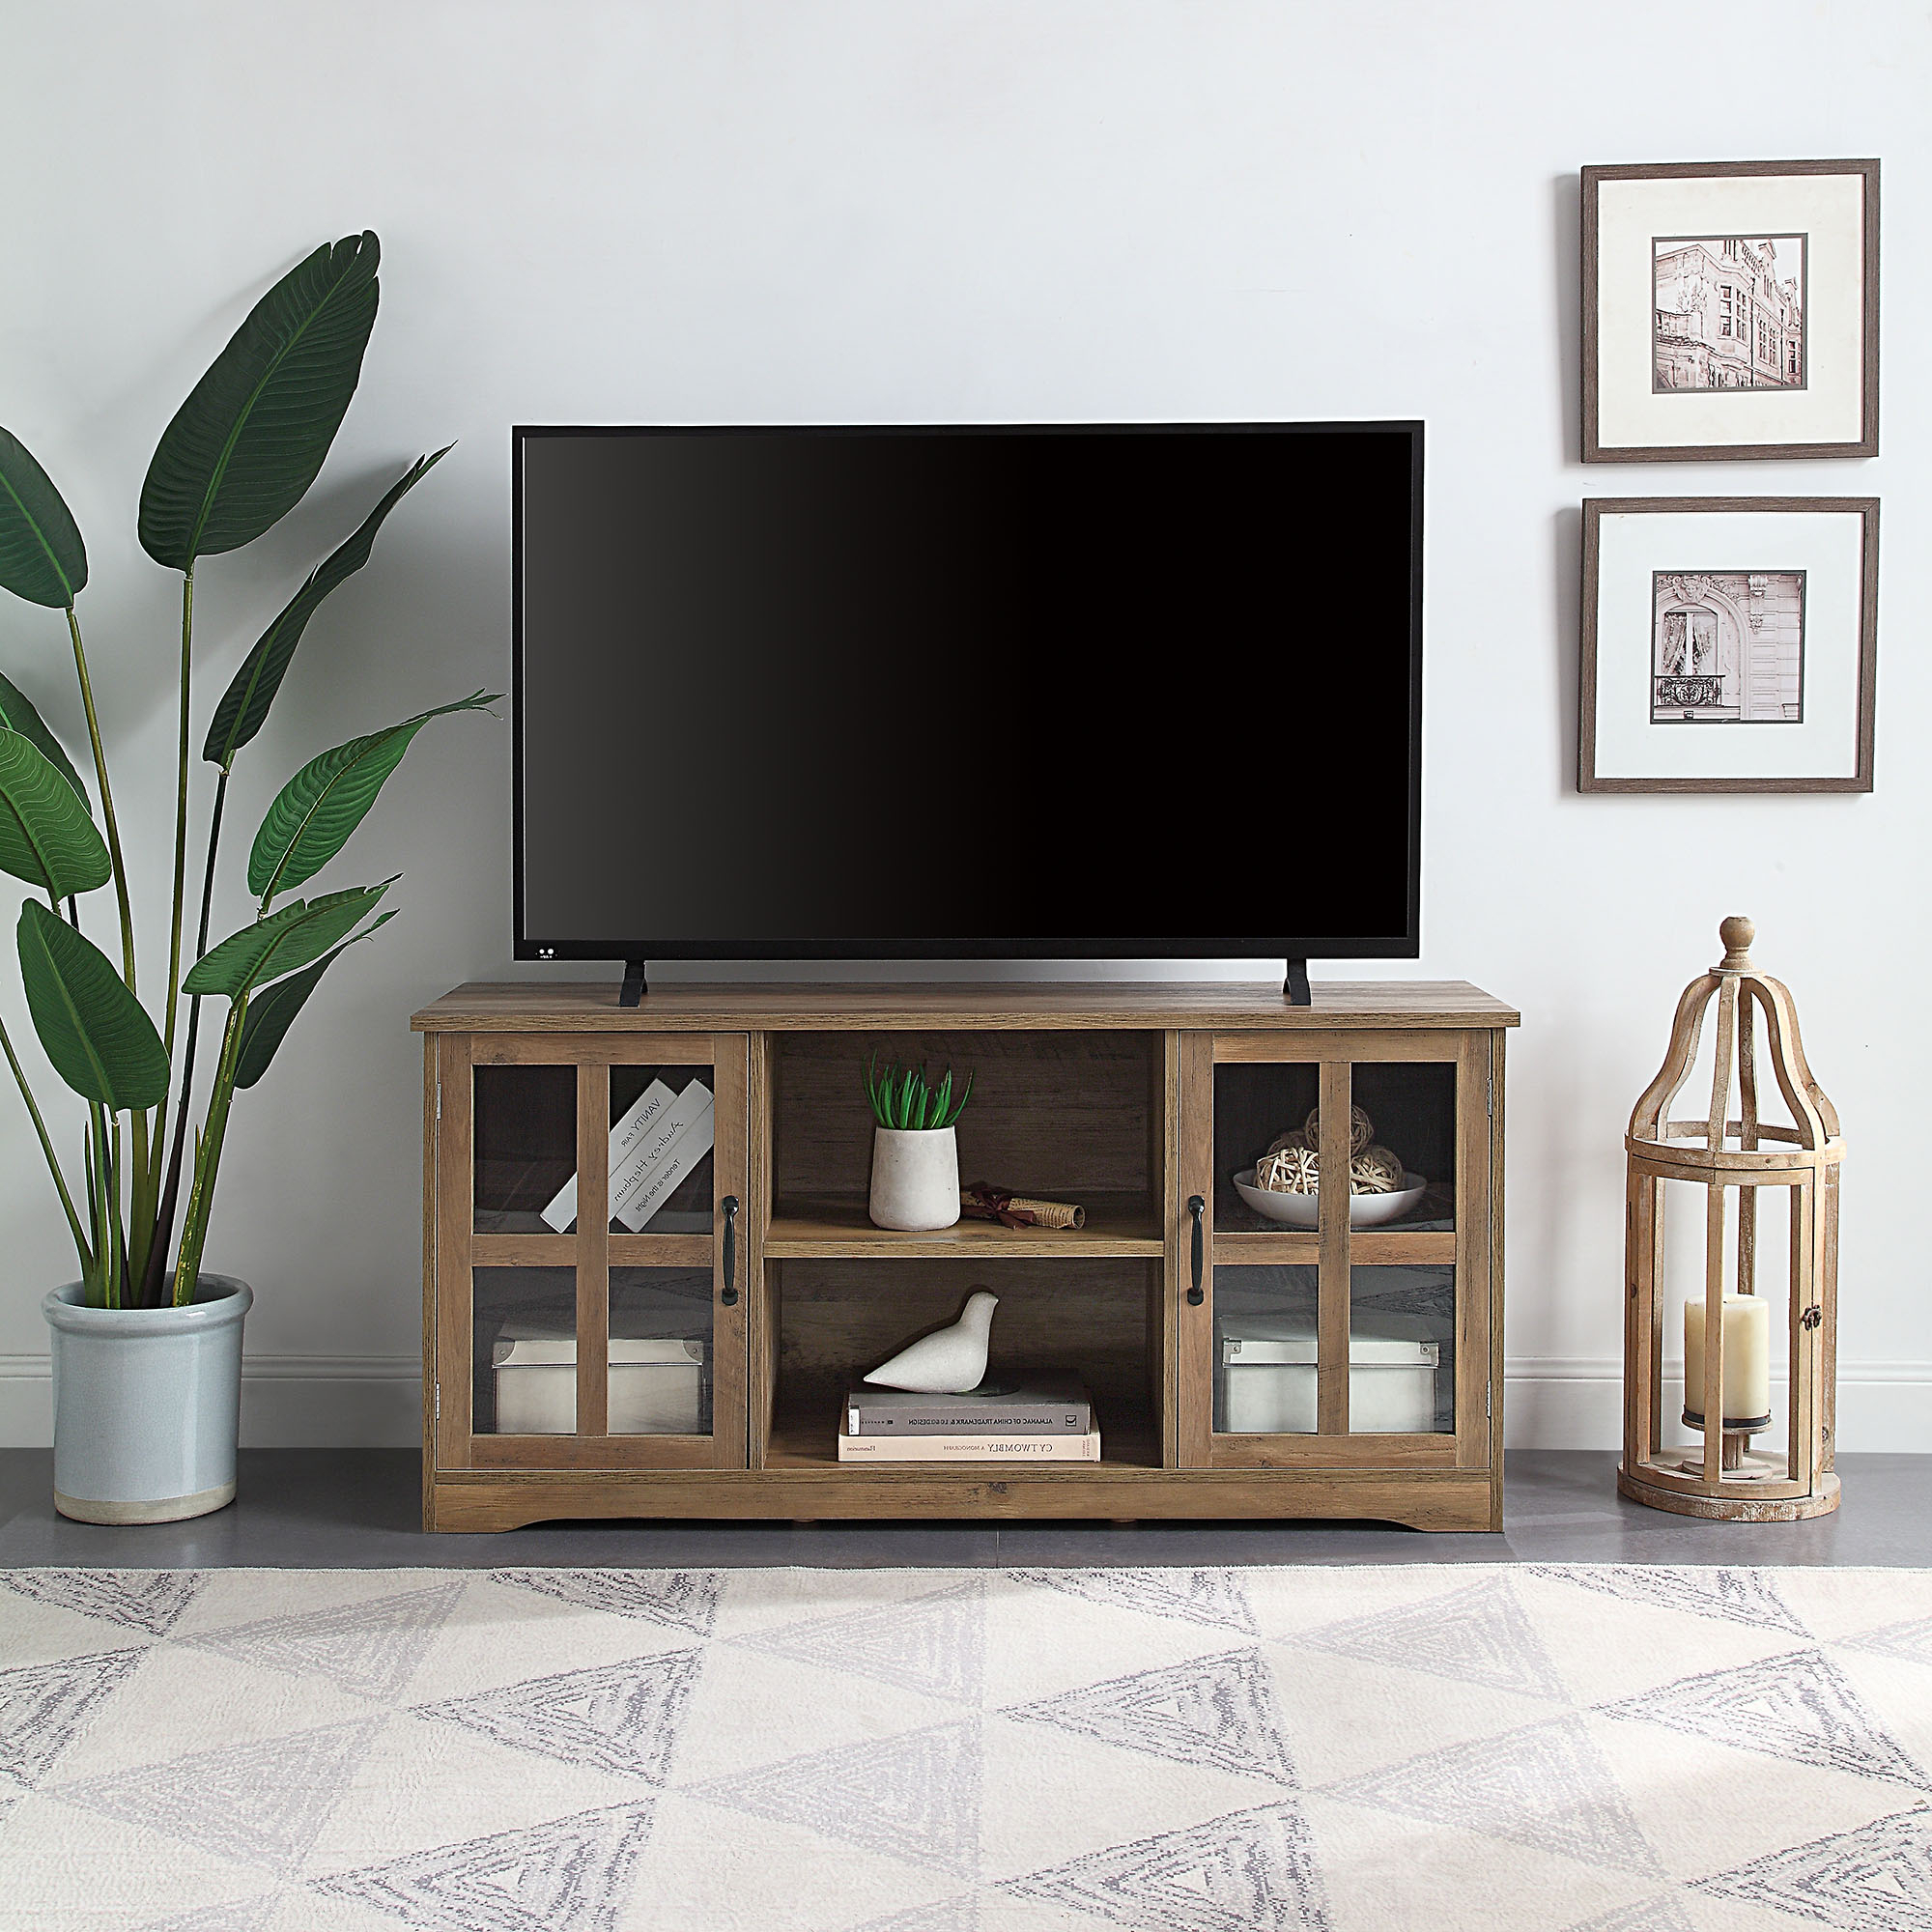 """Belleze Cori 52 Inch Tv Stand Wood And Glass Console For With Glass Shelves Tv Stands For Tvs Up To 60"""" (View 1 of 20)"""